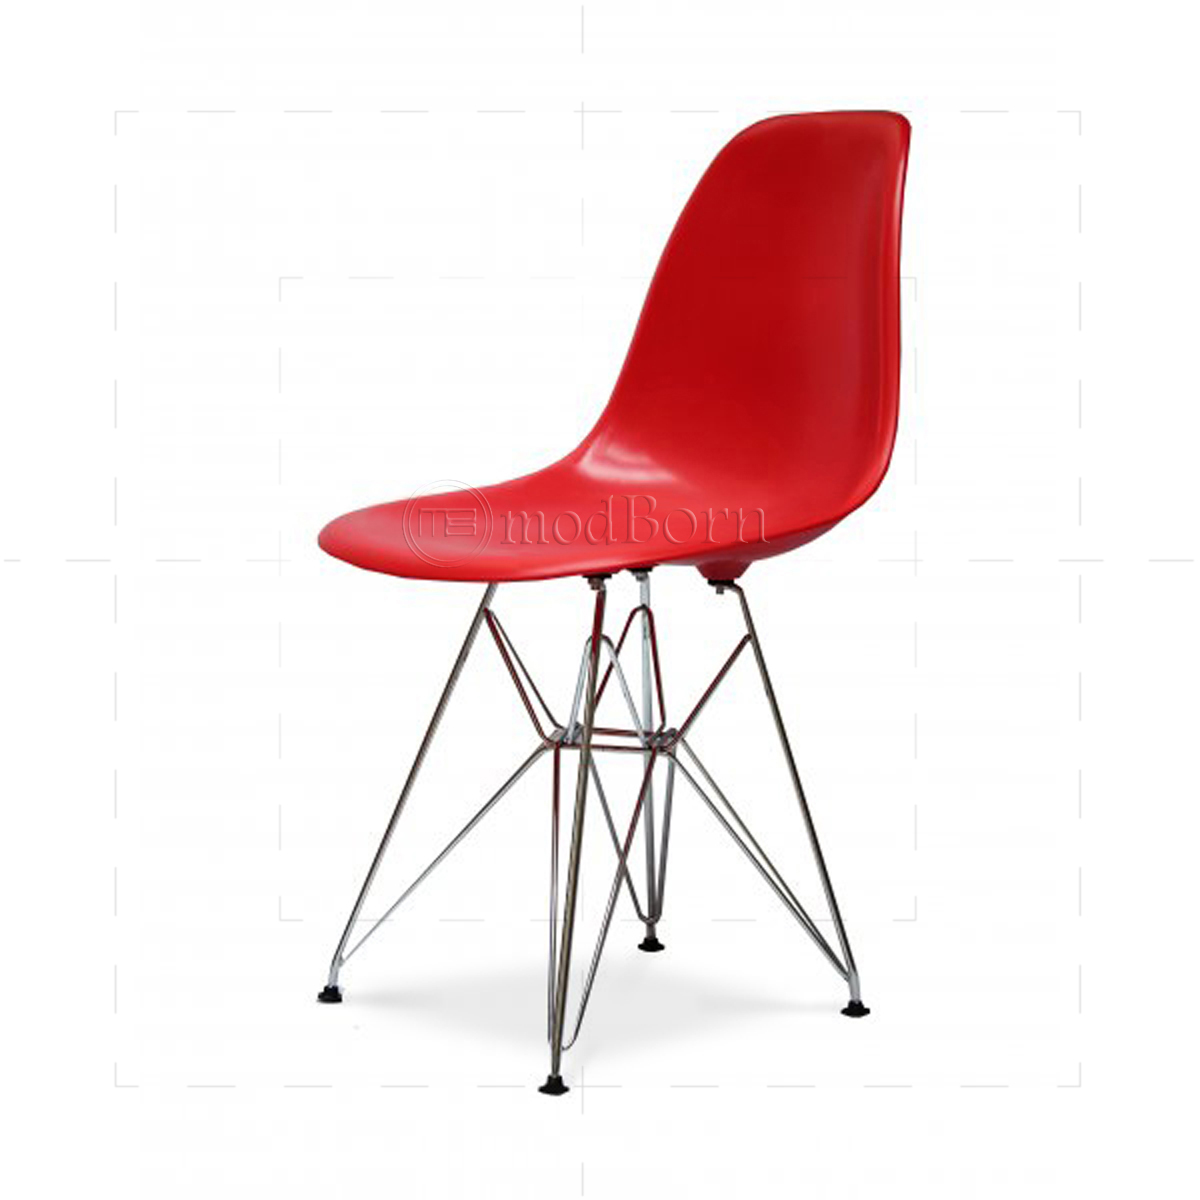 eames style dining dsr eiffel chair red replica. Black Bedroom Furniture Sets. Home Design Ideas